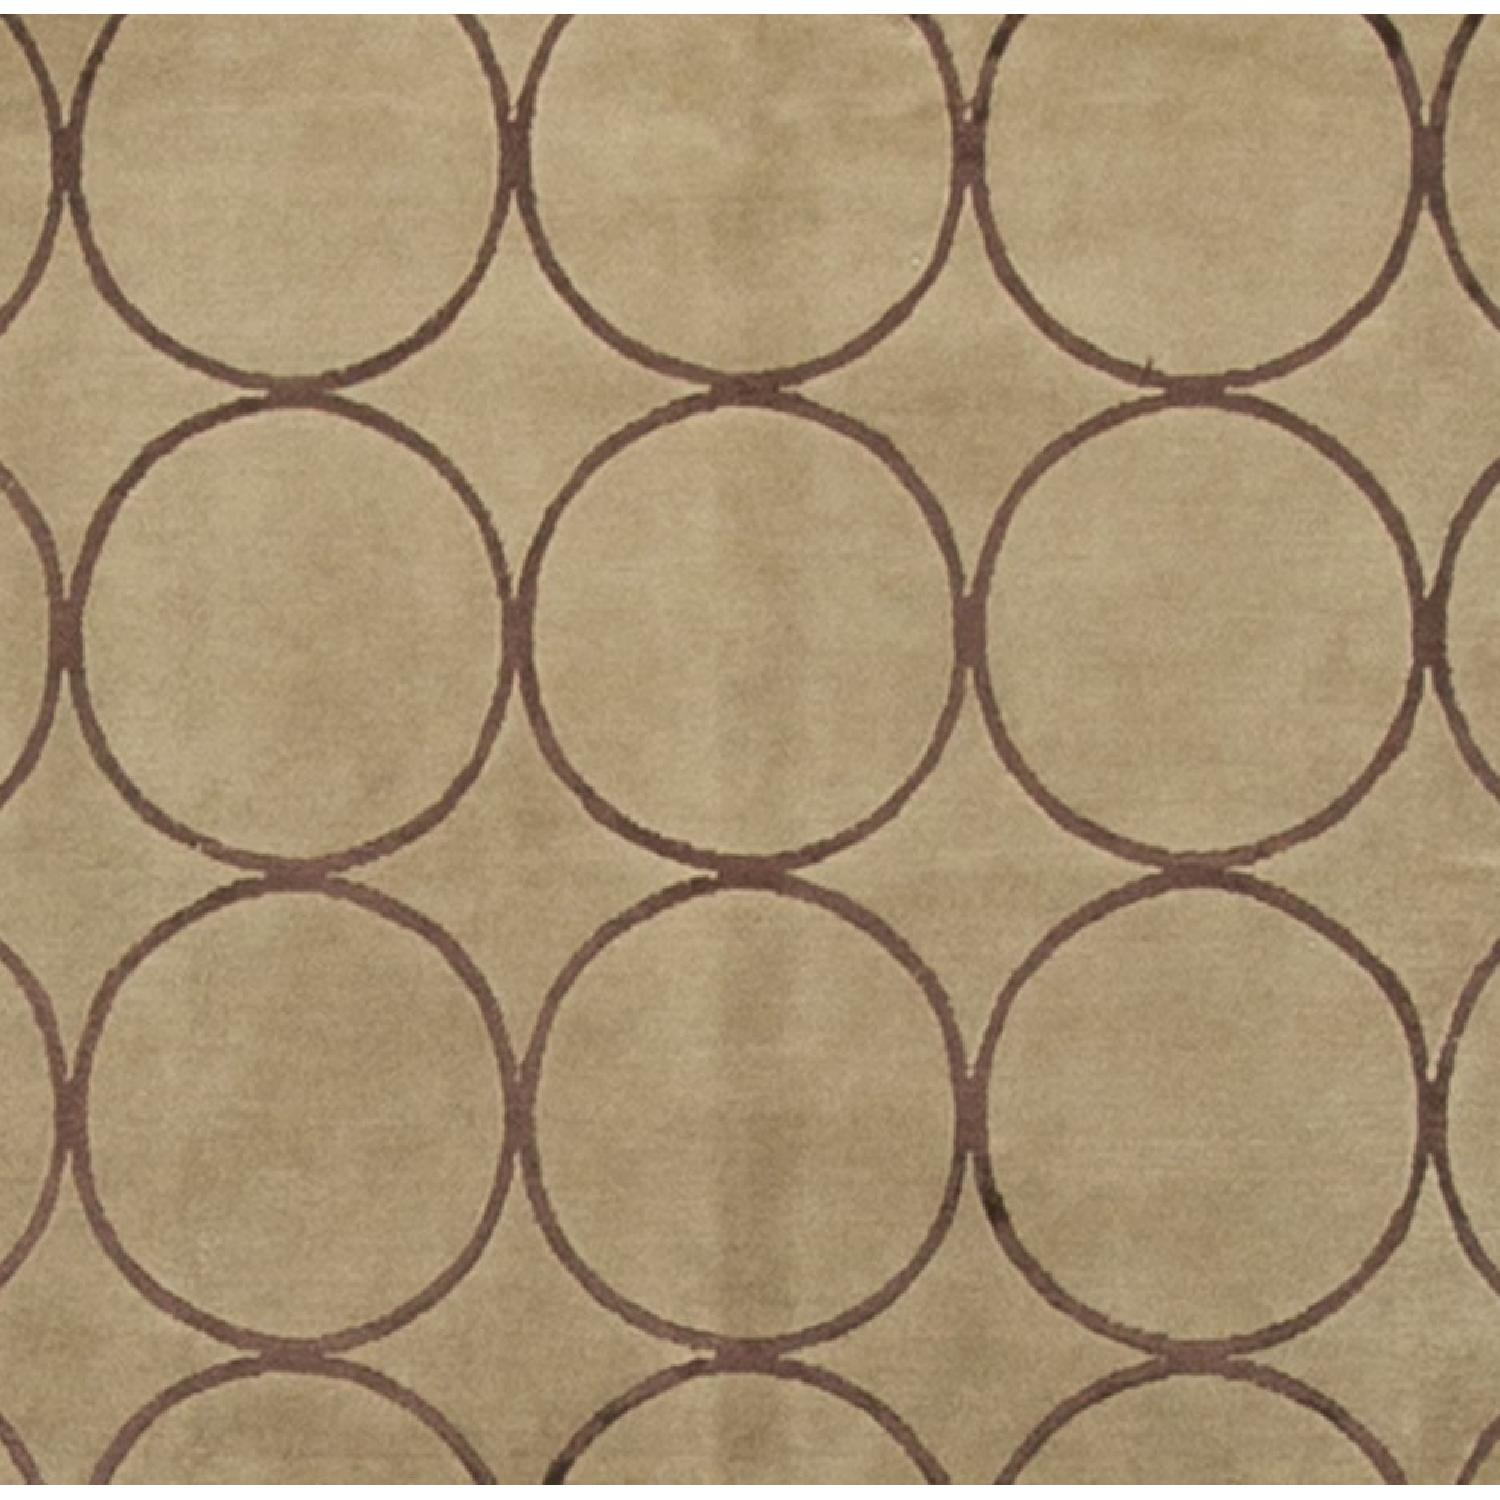 Modern Contemporary Hand Knotted Wool Rug in Brown/Red - image-2